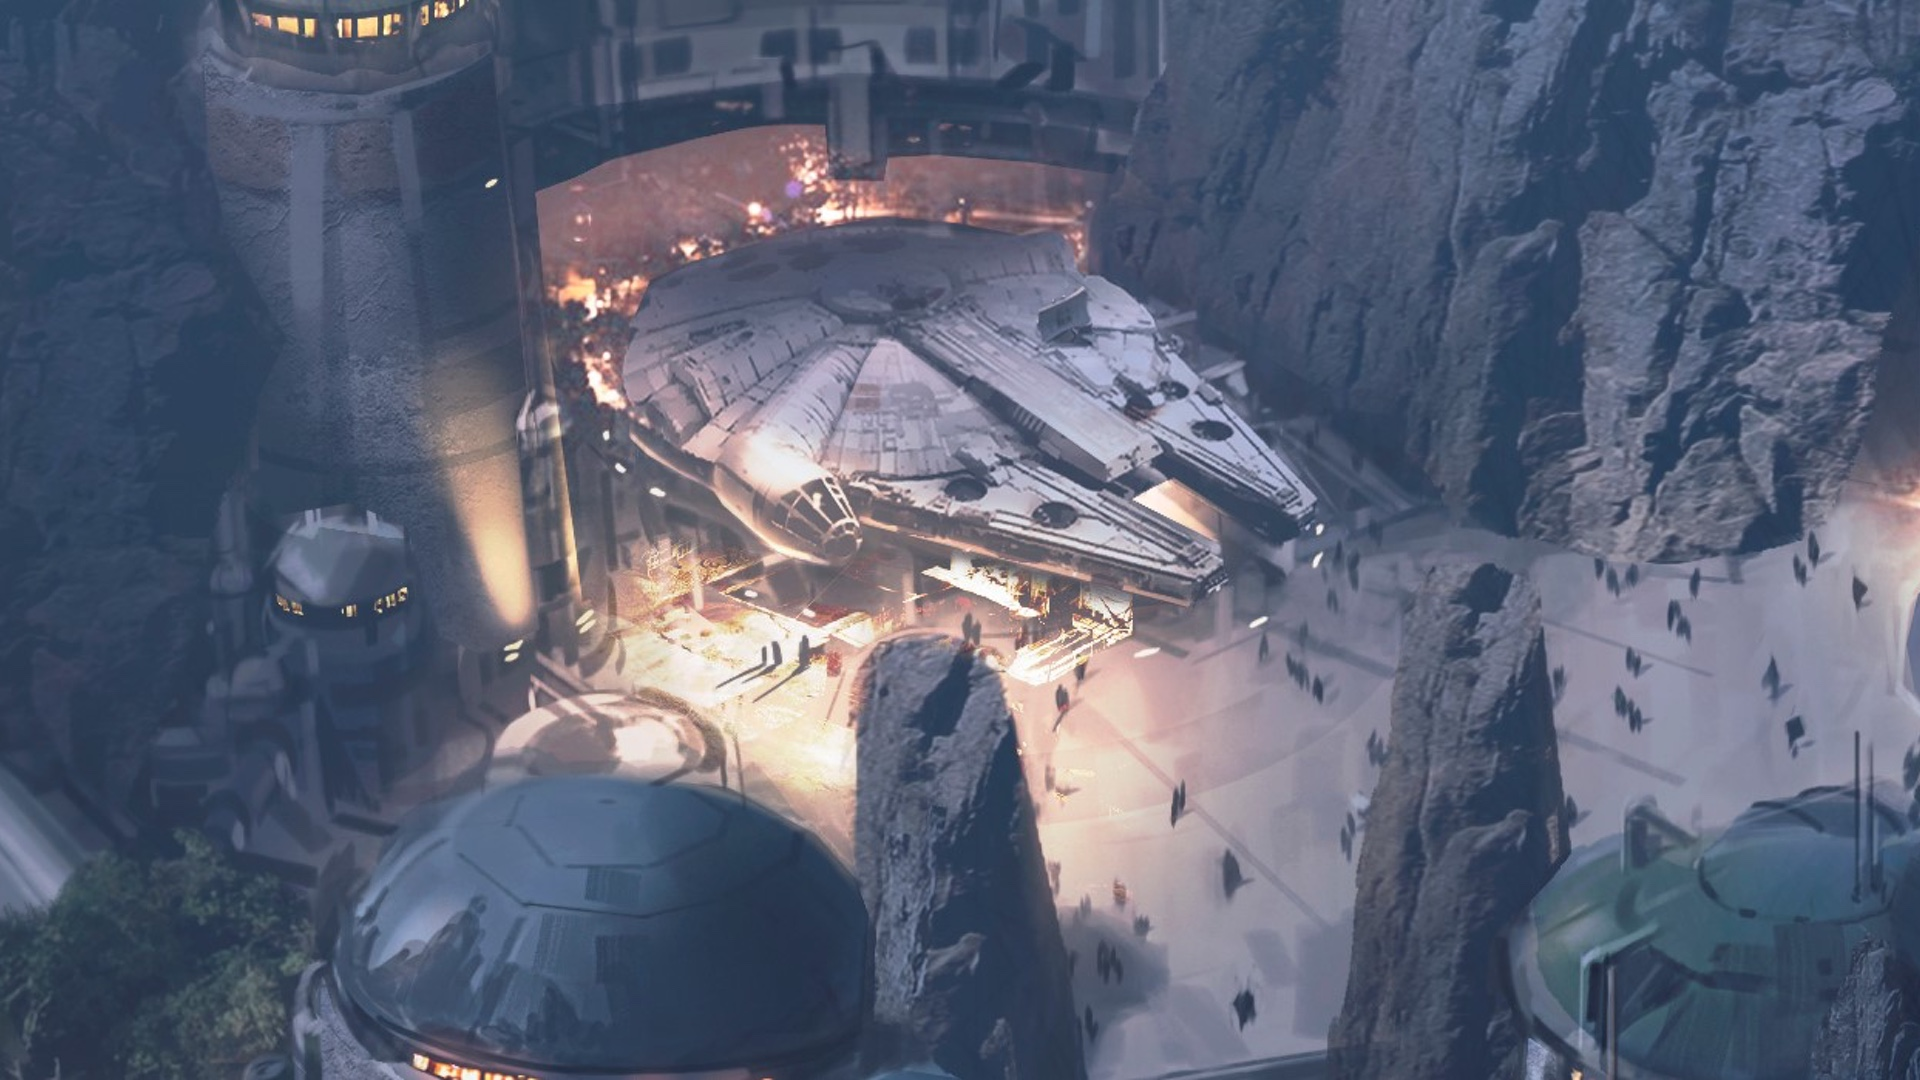 Get a Look Inside the Cockpit of the Millenium Falcon at Star Wars: Galaxy's Edge with Solo: A Star Wars Story